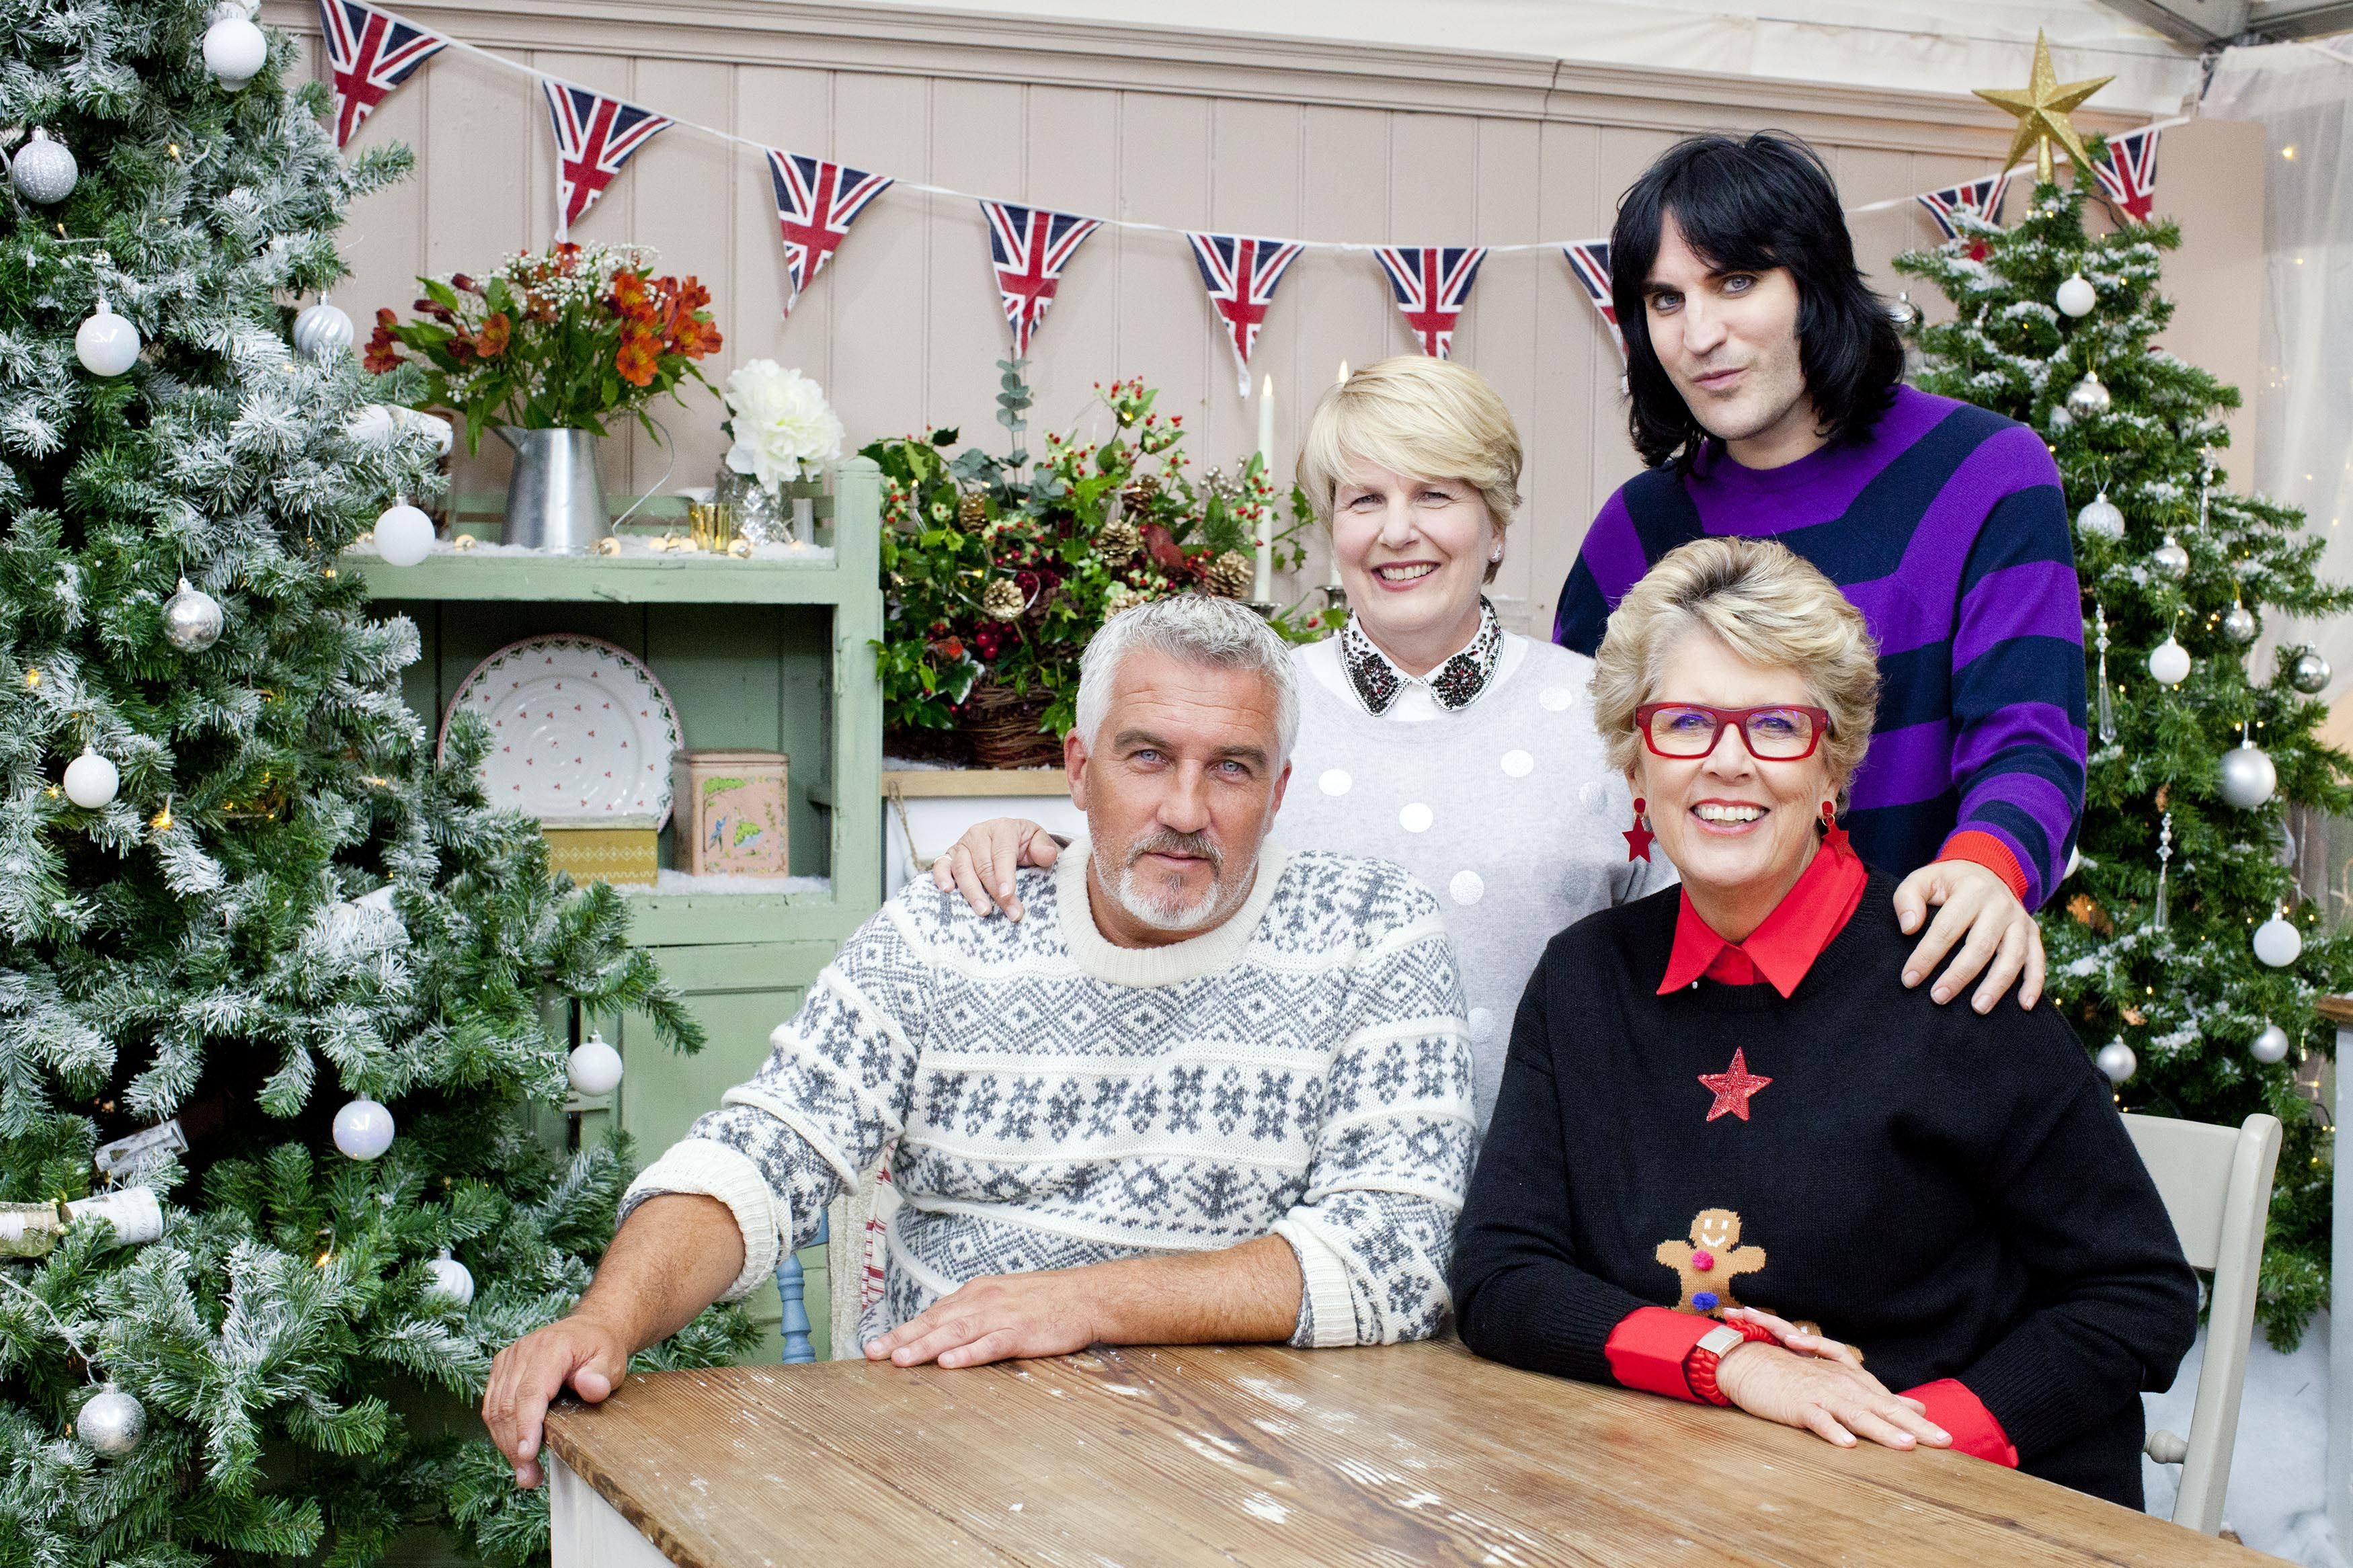 2021 Christmas Bake Off The Great Christmas Bake Off Details Have Been Revealed